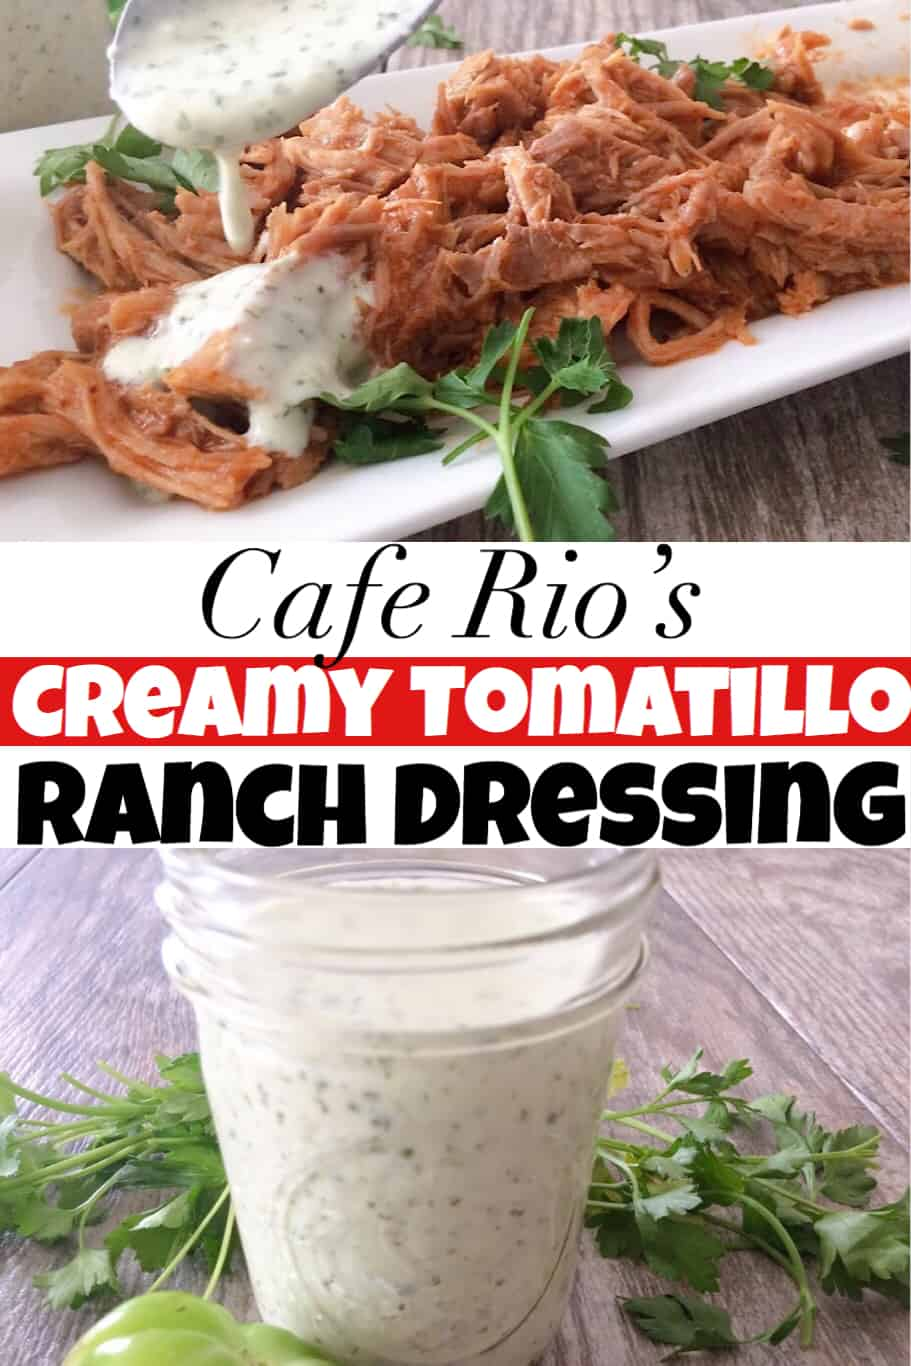 Cafe Rio's Creamy Tomatillo Ranch Dressing